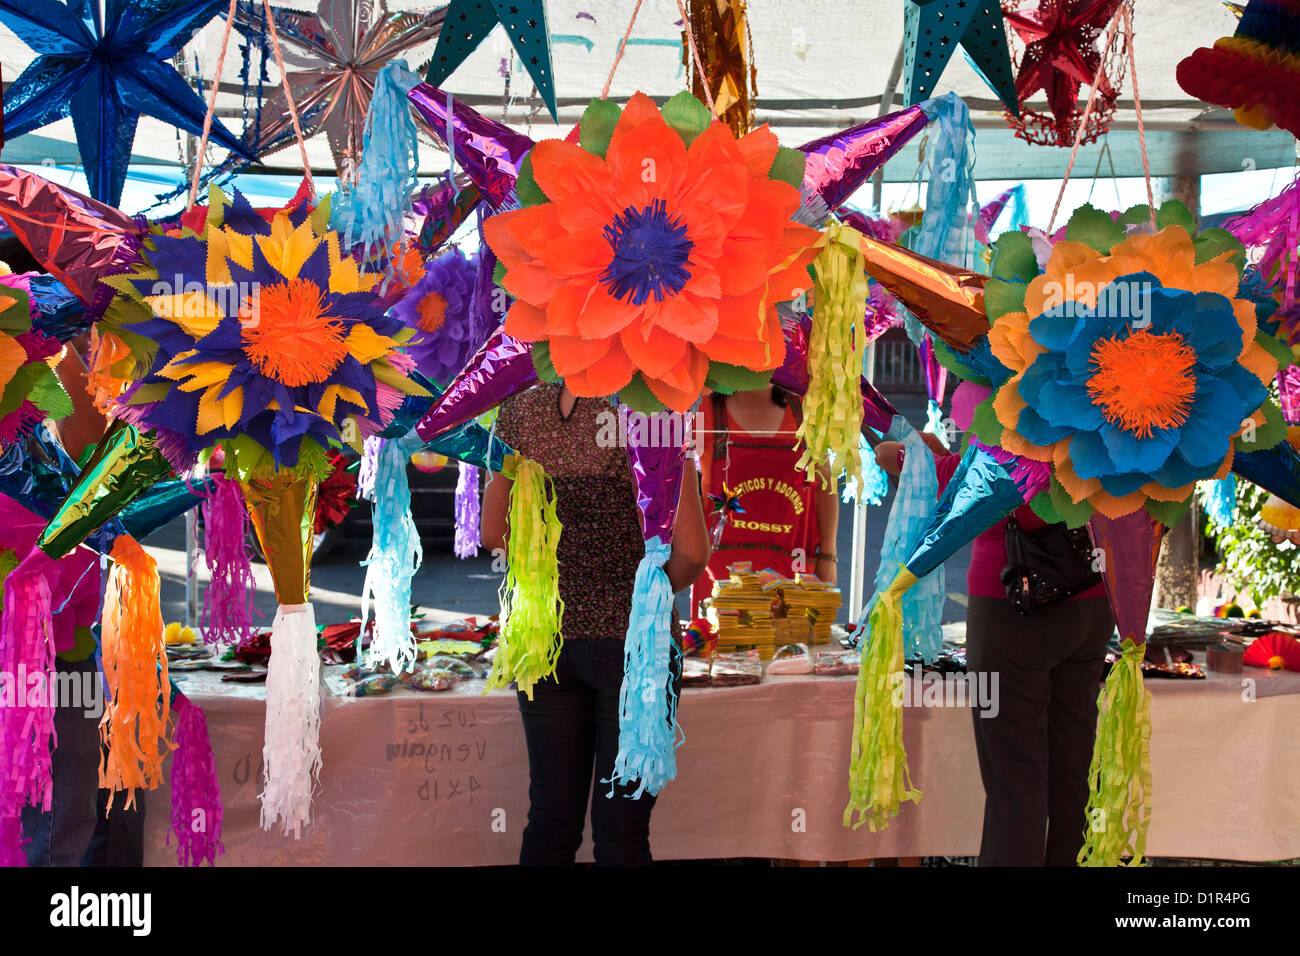 Traditional mexican christmas decorations - Beautiful Vividly Colored Pinatas Other Christmas Decorations For Sale In Courtyard Of La Merced Market